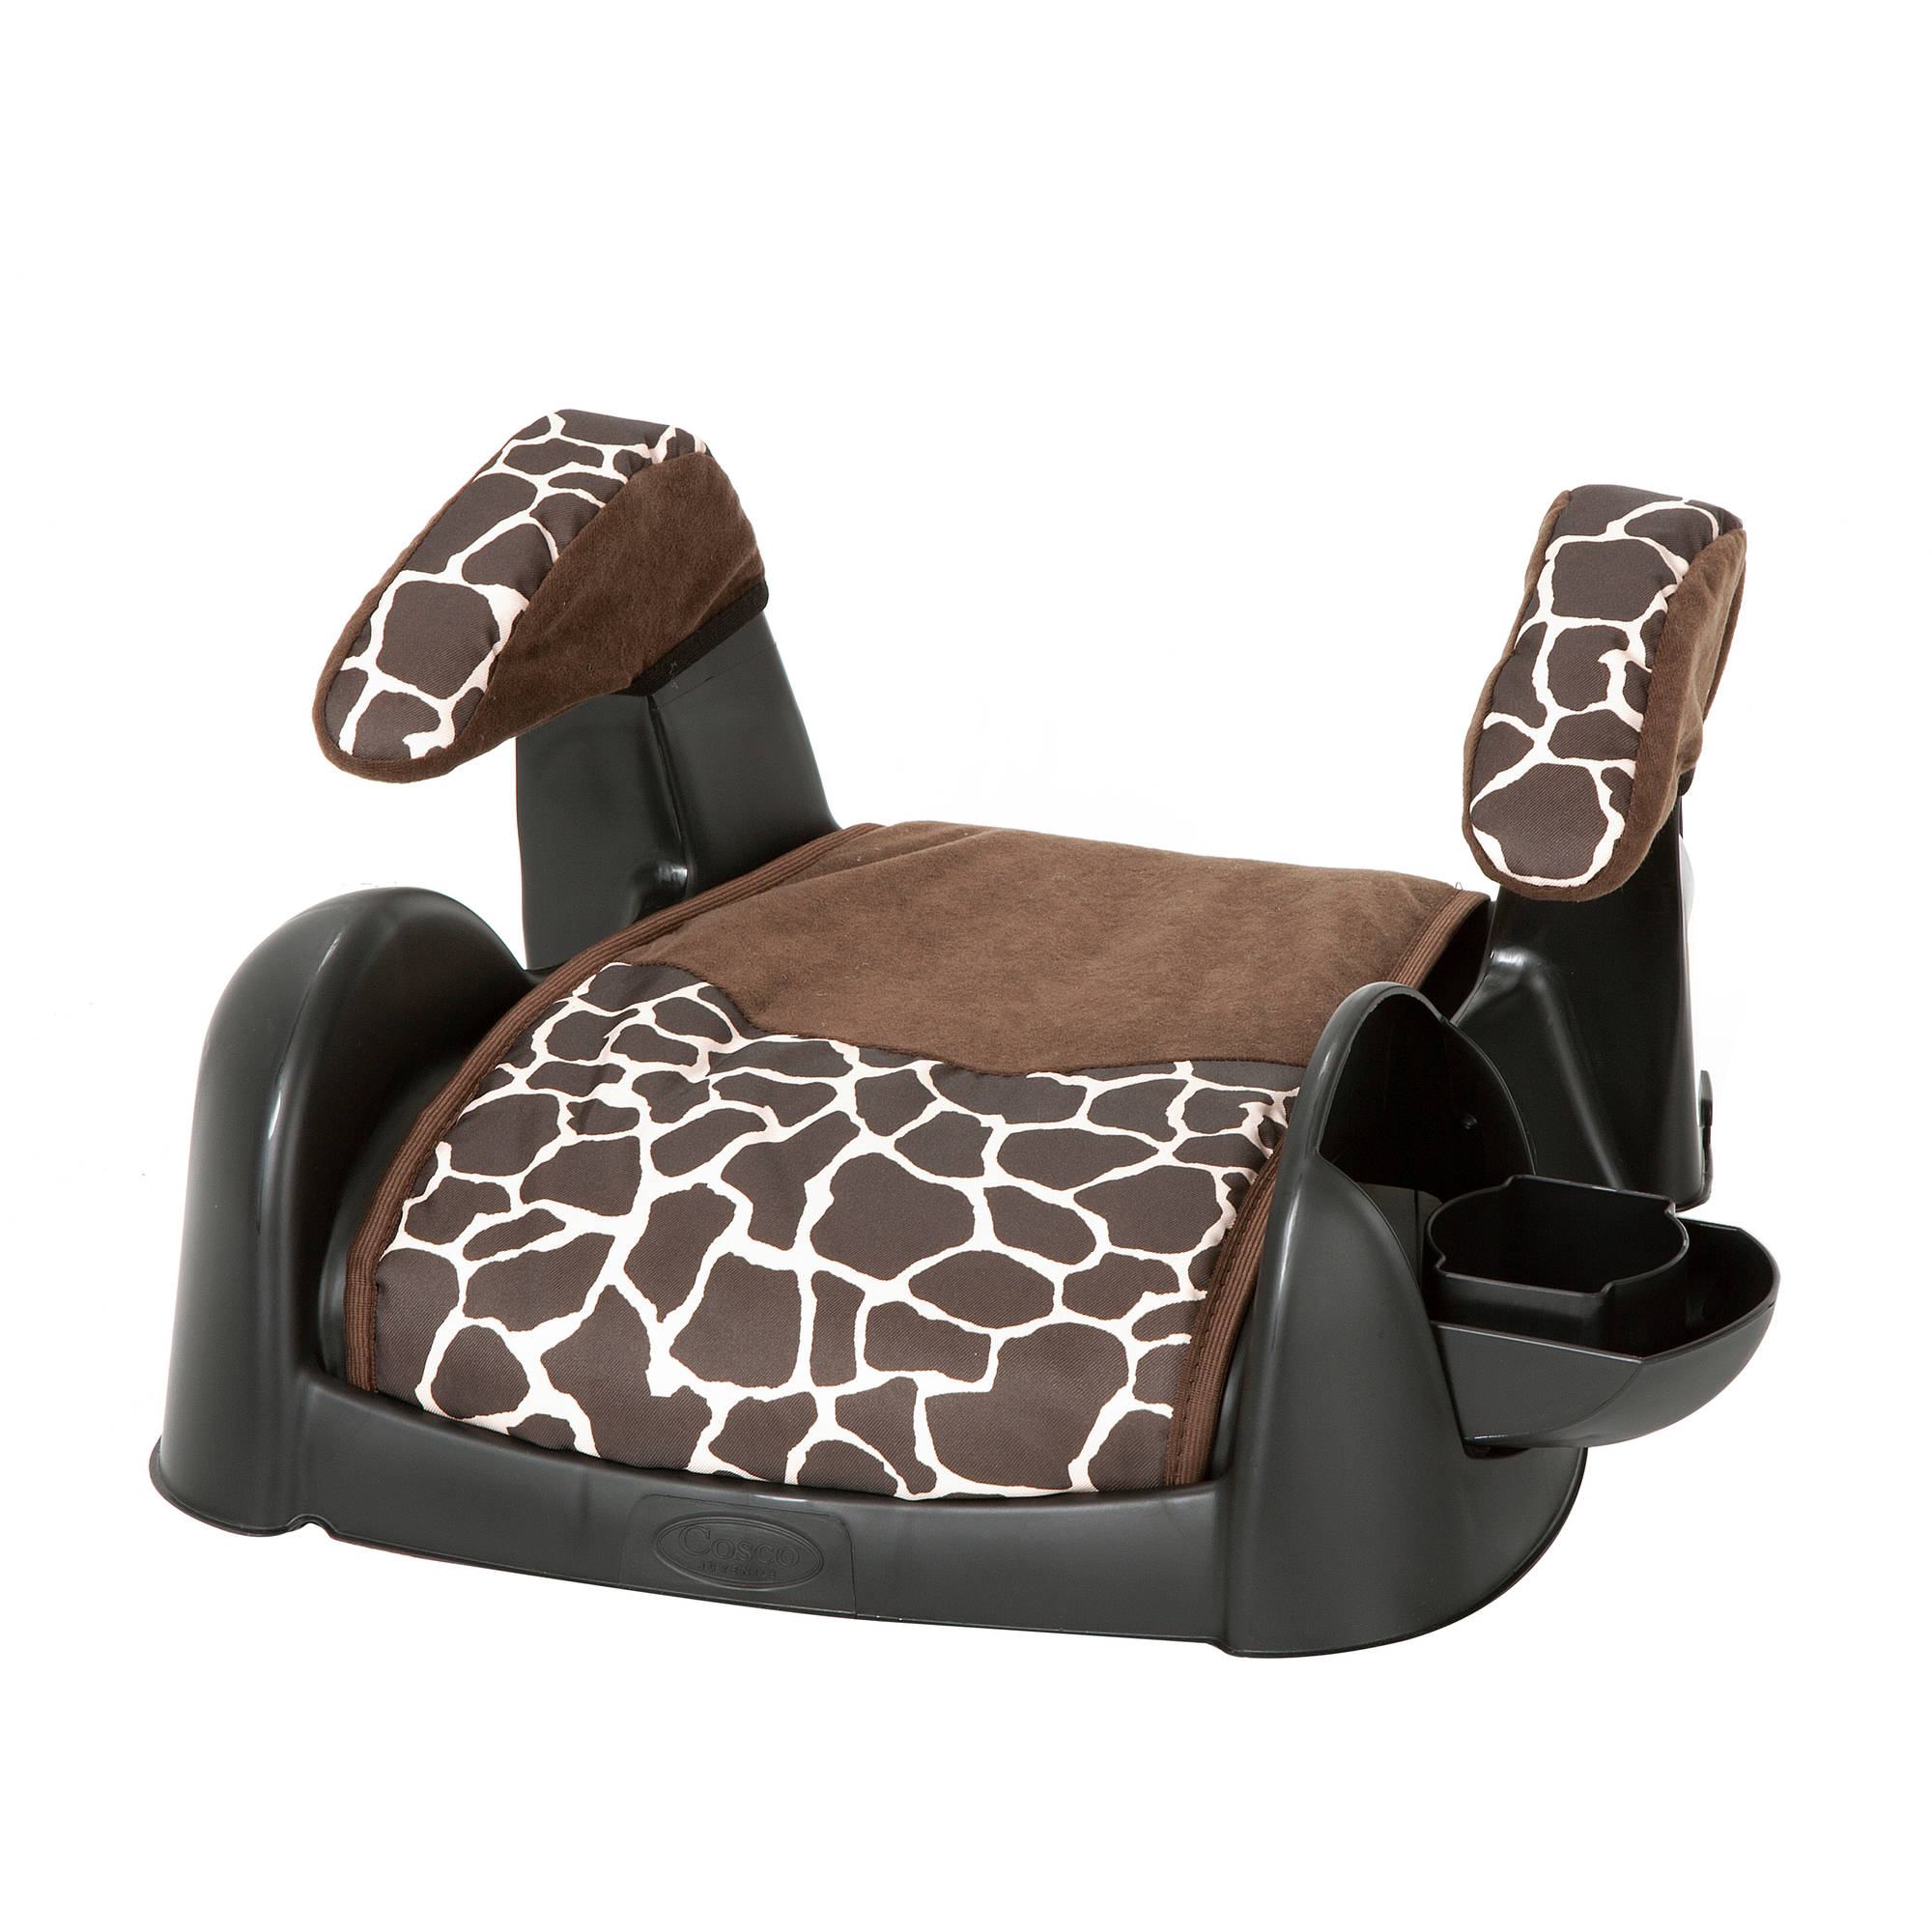 Cosco HiRise Booster Car Seat, Quigley